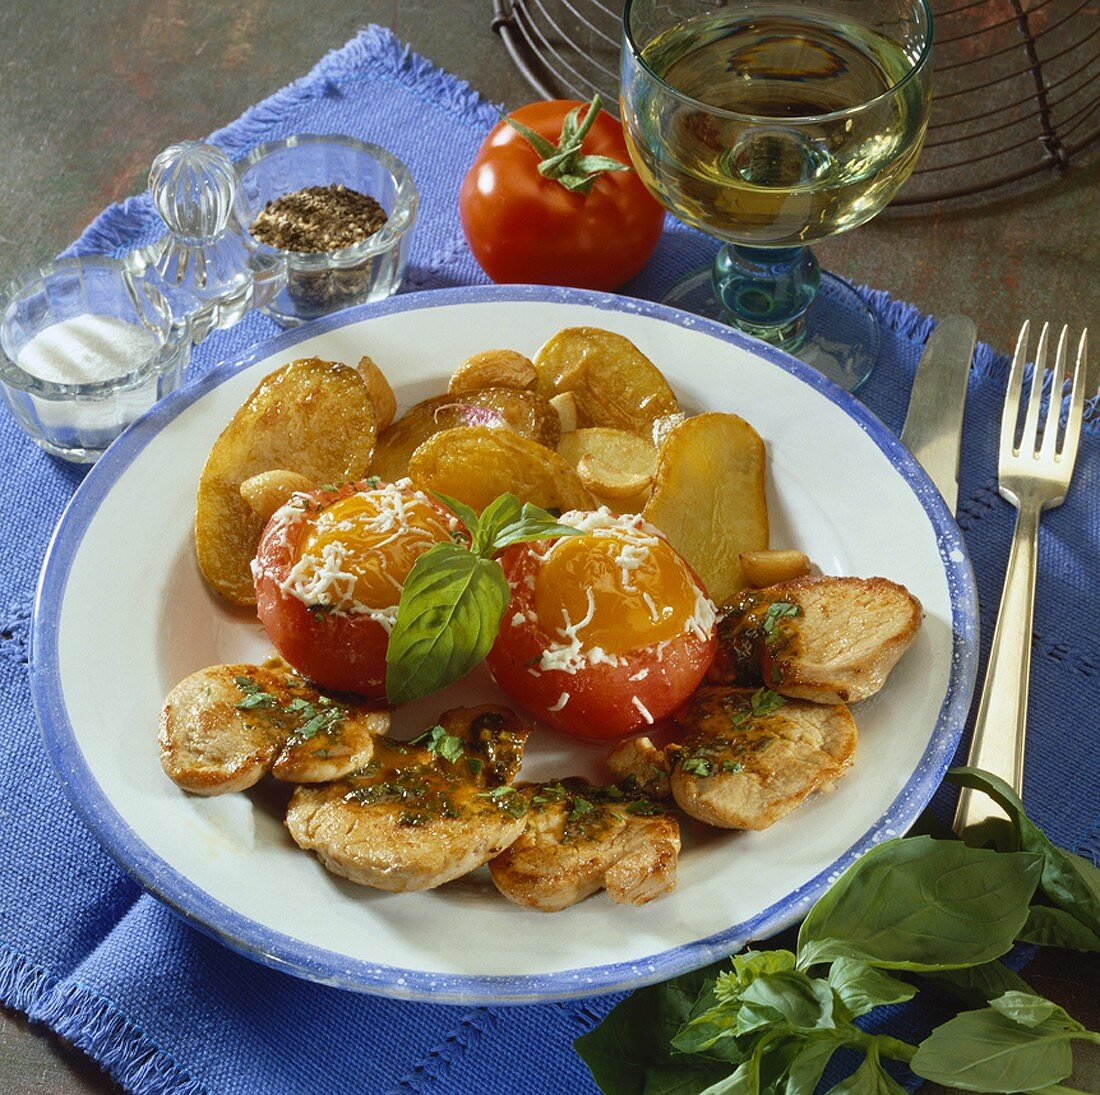 Pork fillet, eggs in tomato nests and fried potatoes